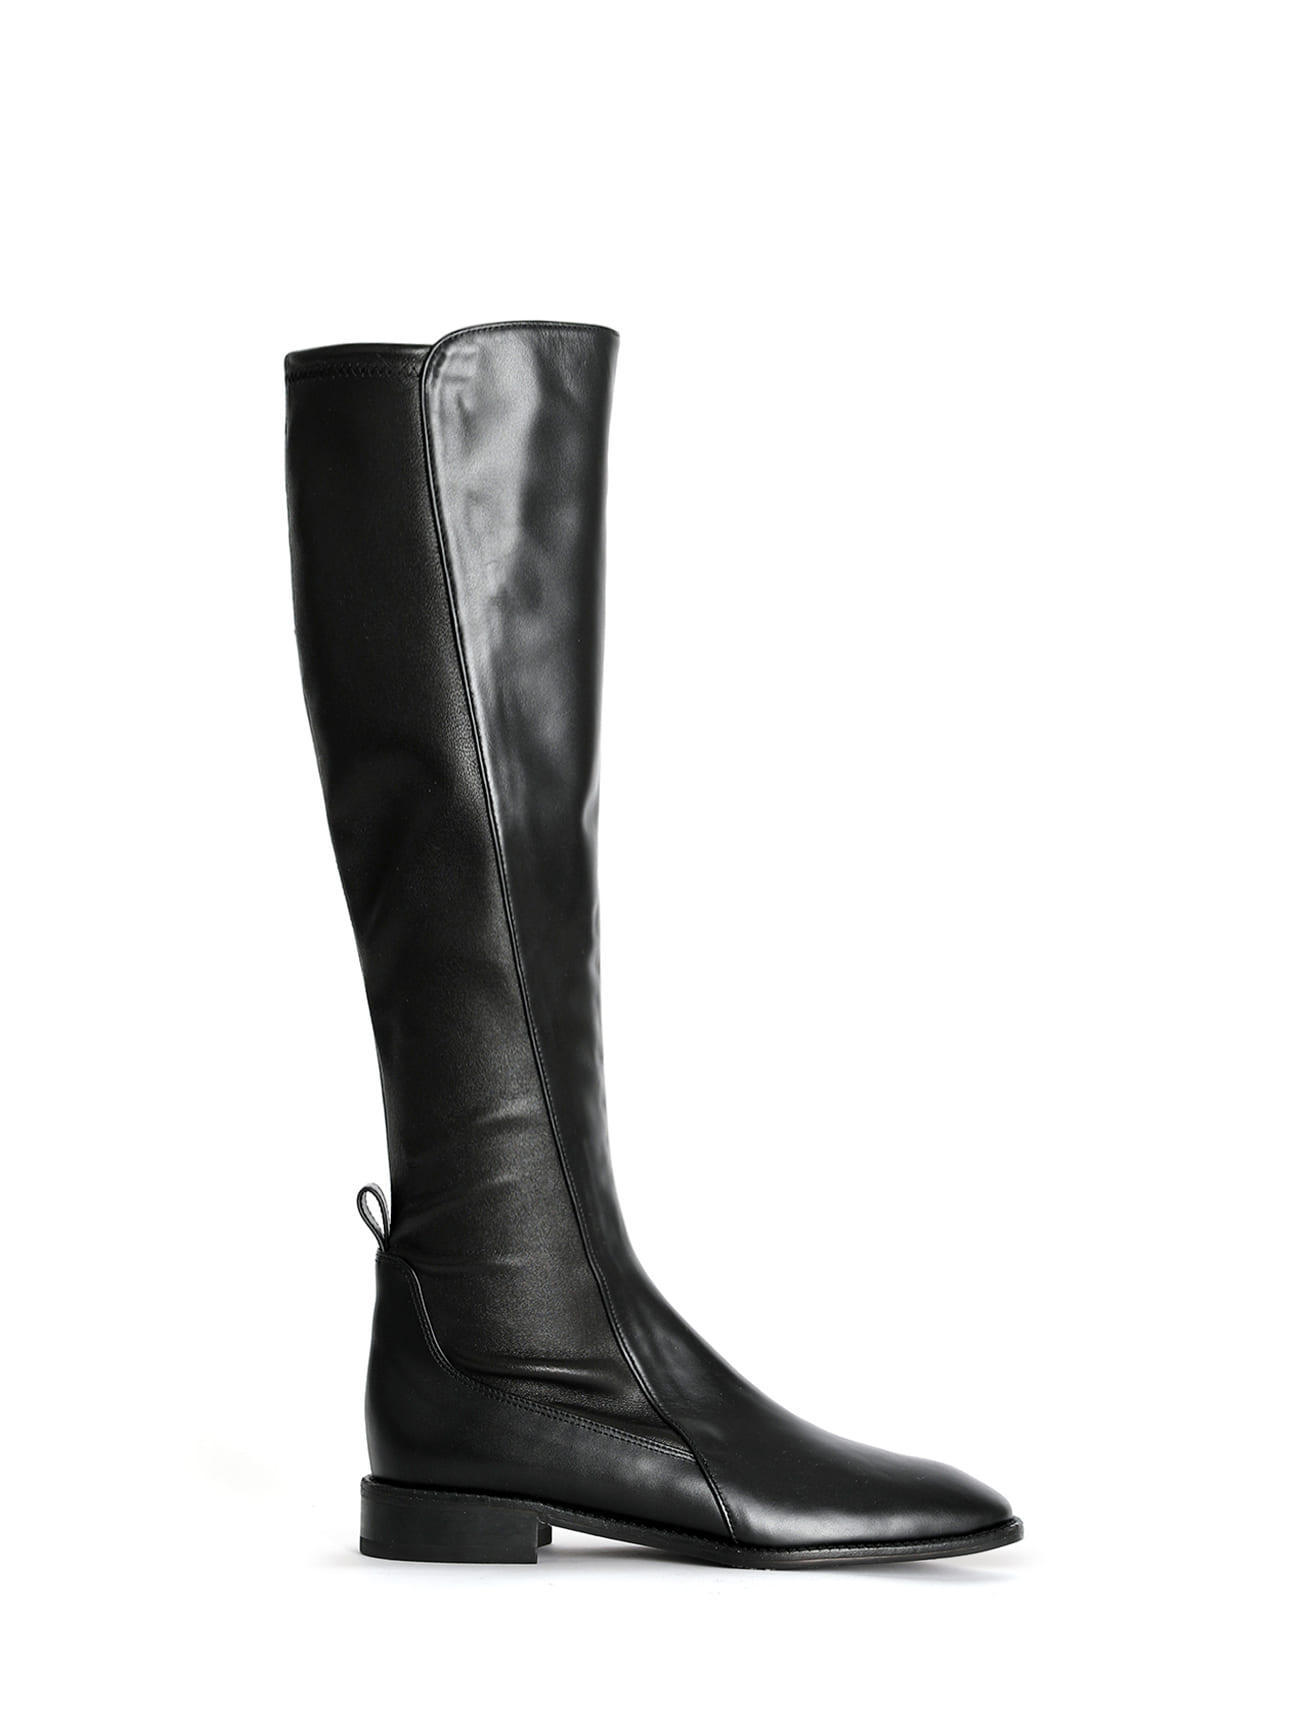 JACKSON LEATHER KNEE-HIGH BOOTS - BLACK (4cm)